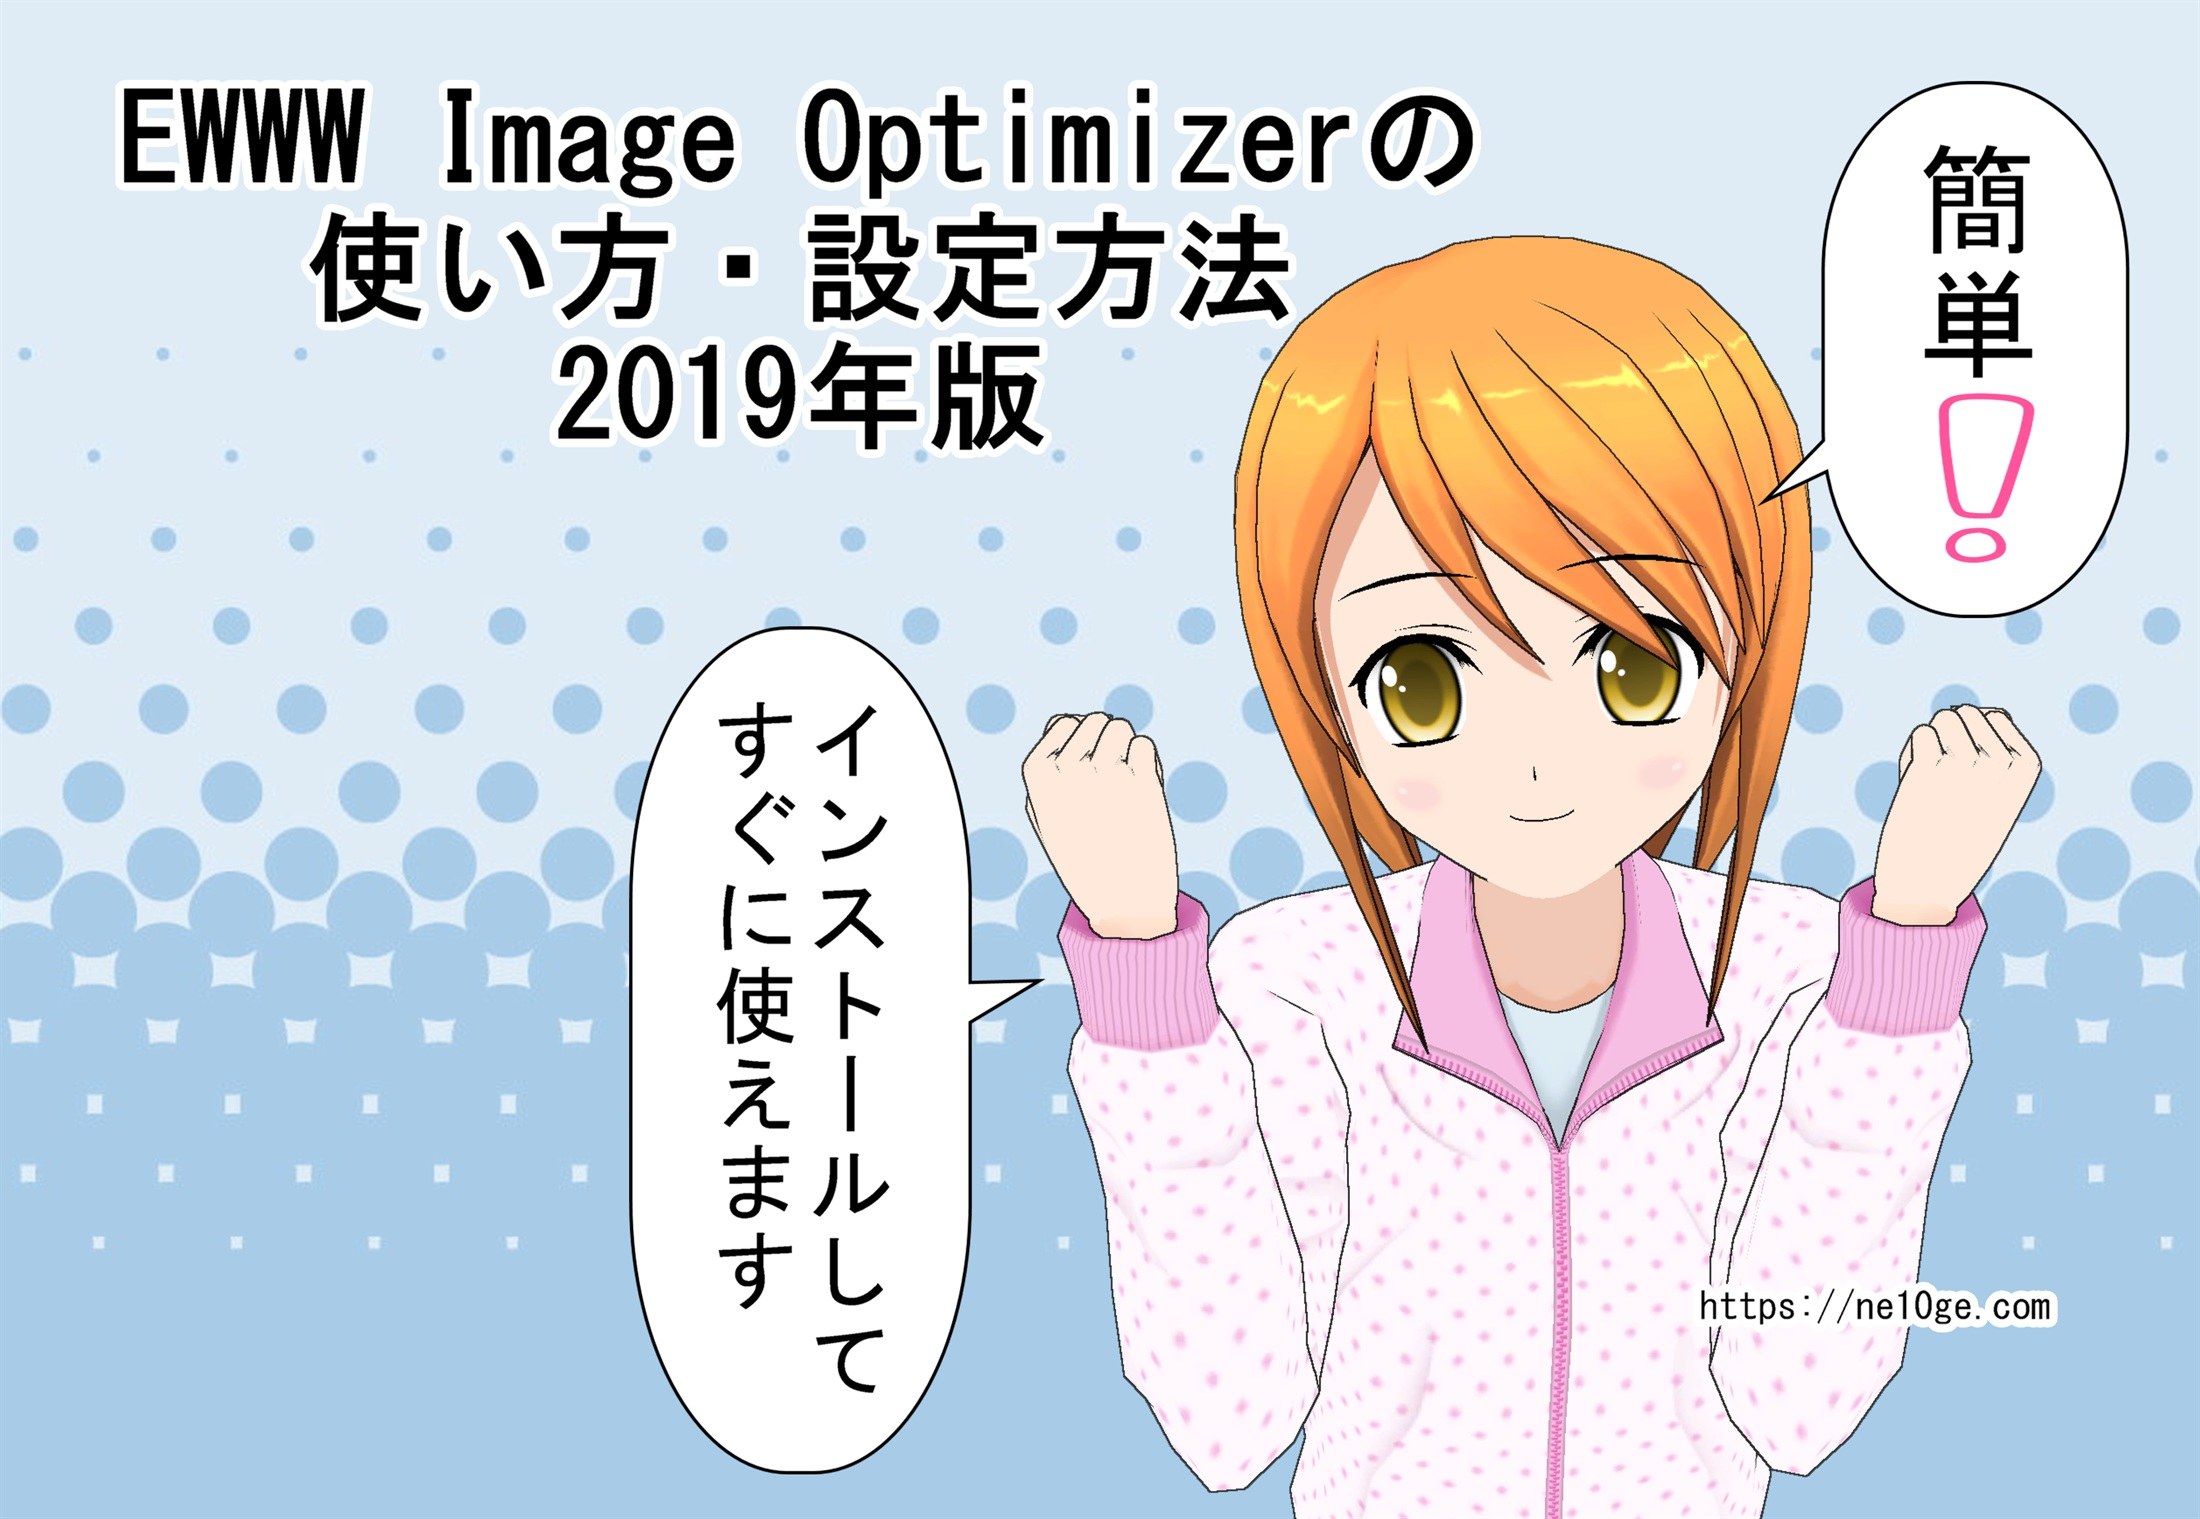 EWWW Image Optimizerの使い方2019年版